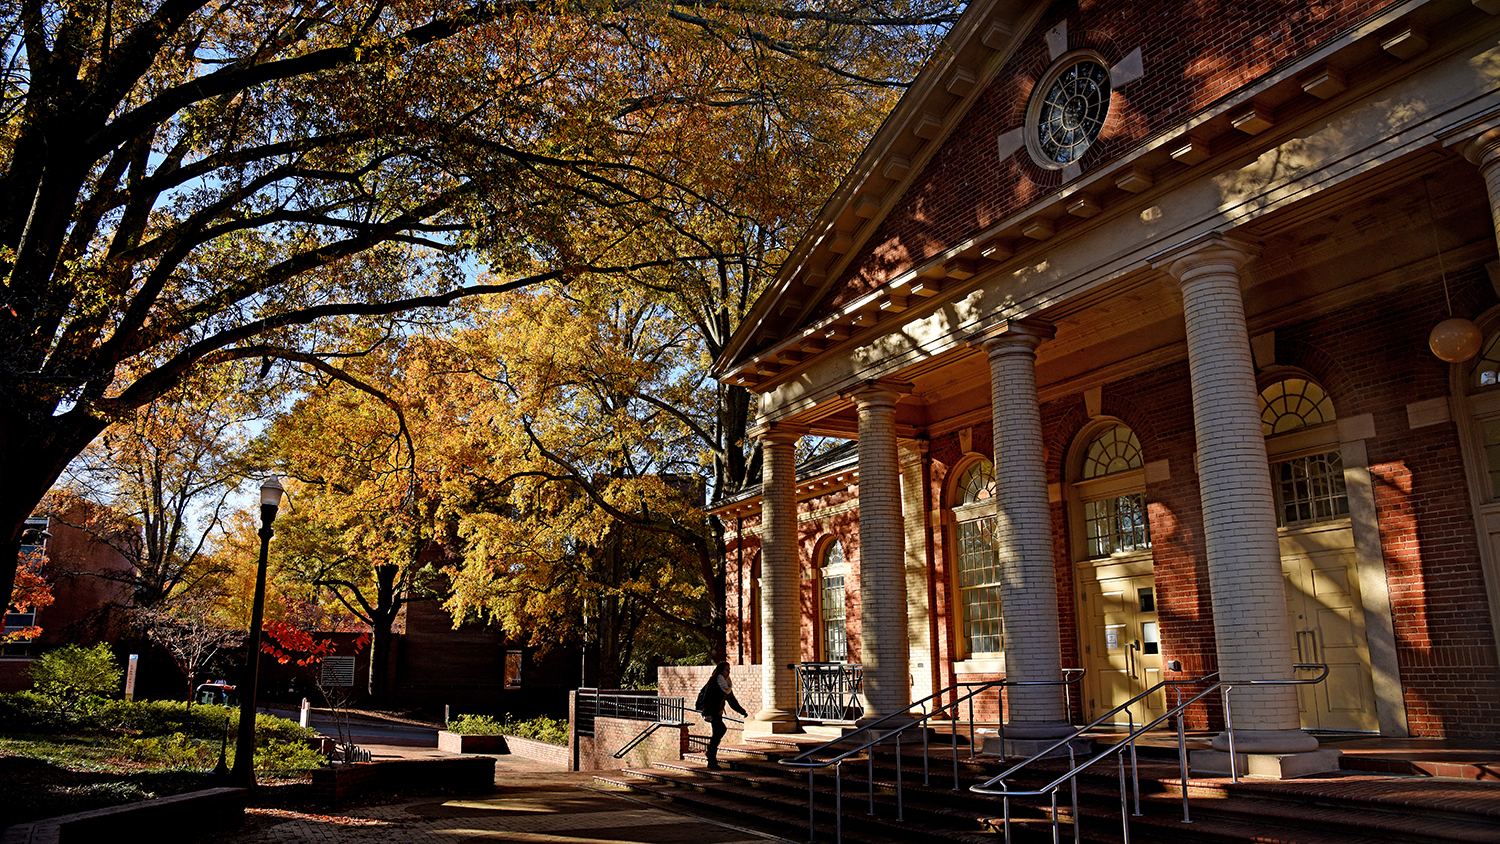 Morning fall sun casts a glow on the College of Design's Leazer Hall.